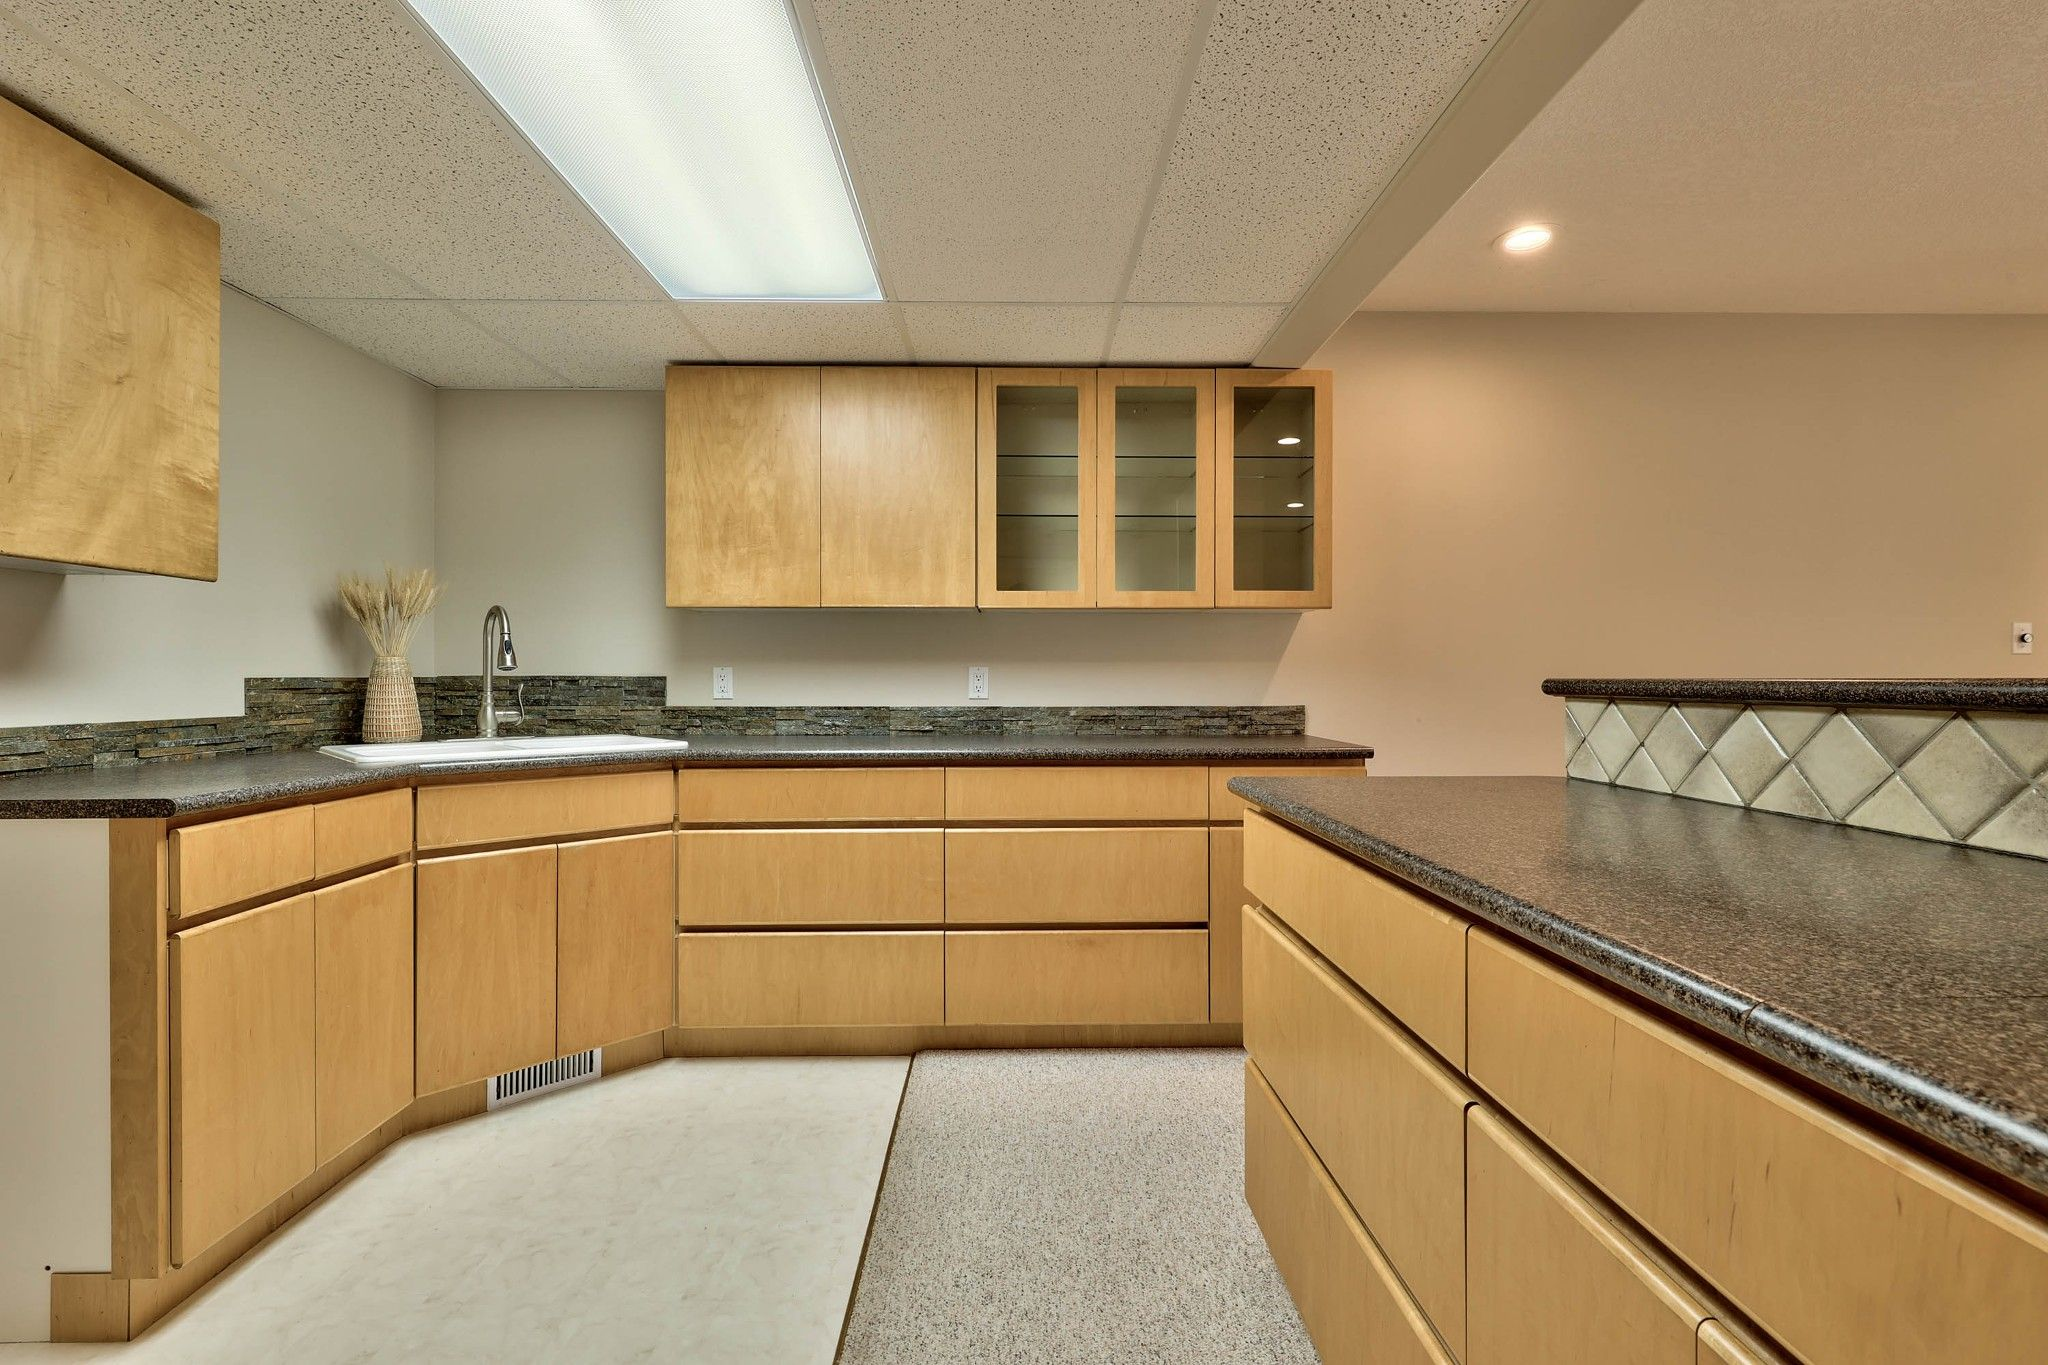 Photo 31: Photos: 3299 E Shuswap Road in Kamloops: South Thompson Valley House for sale : MLS®# 162162